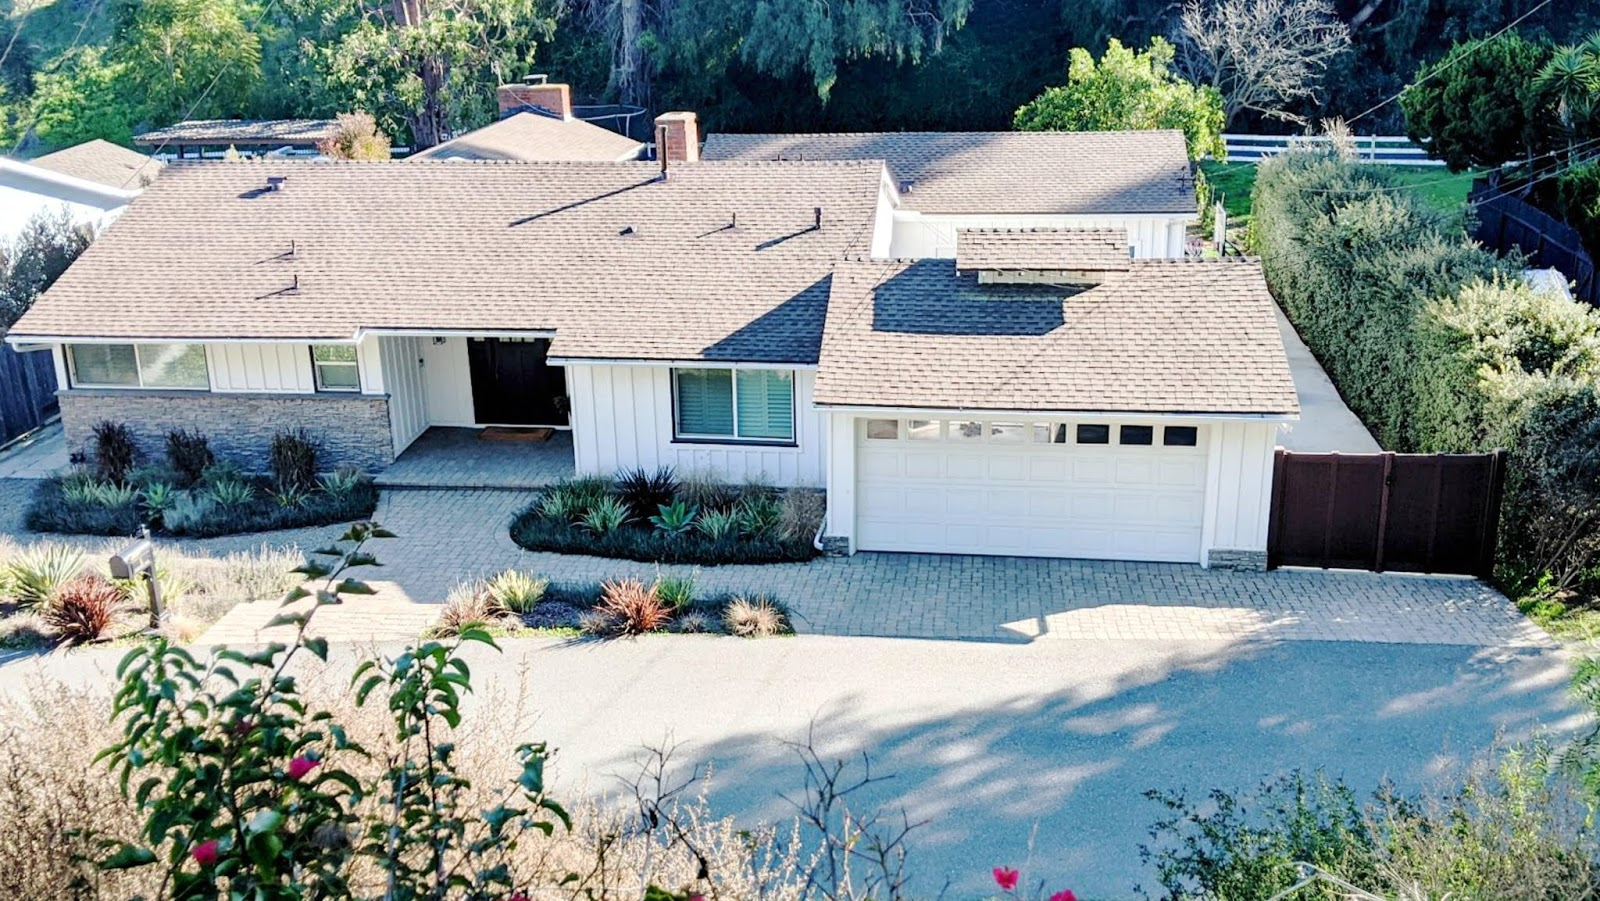 exterior home improvements updates bufftech vinyl wood privacy gate fence double door modern craftsman ranch home house curb appeal